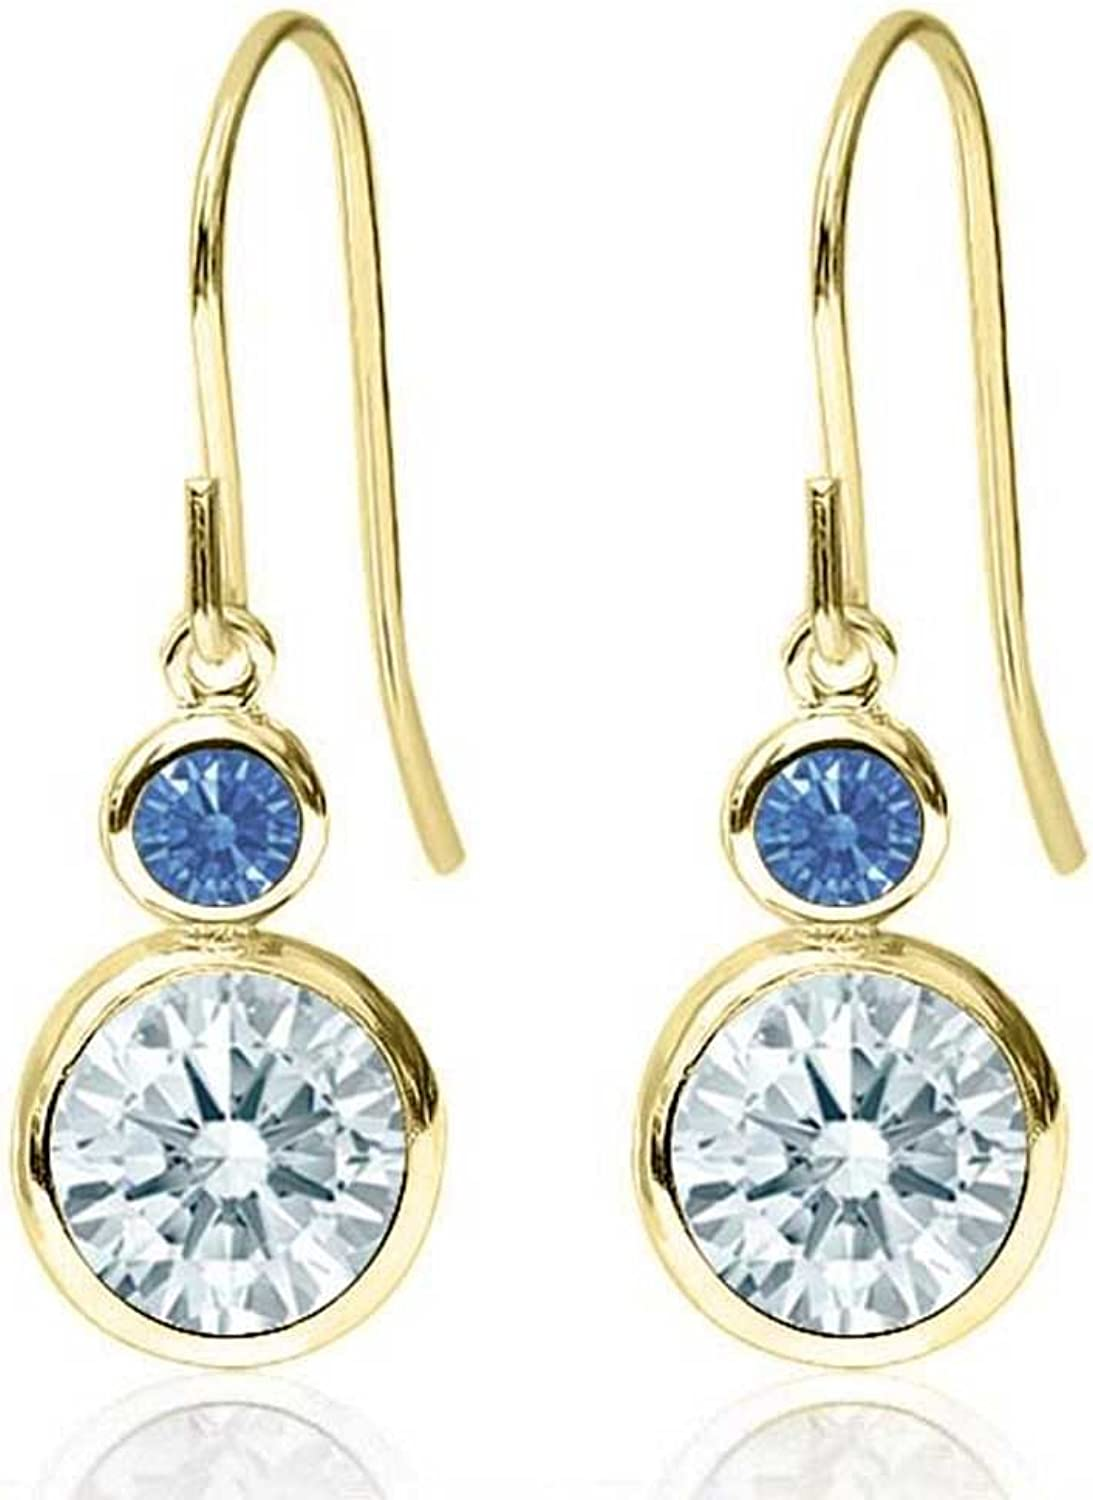 Carlo white White 14K Yellow gold Earrings Made With Swarovski Zirconia